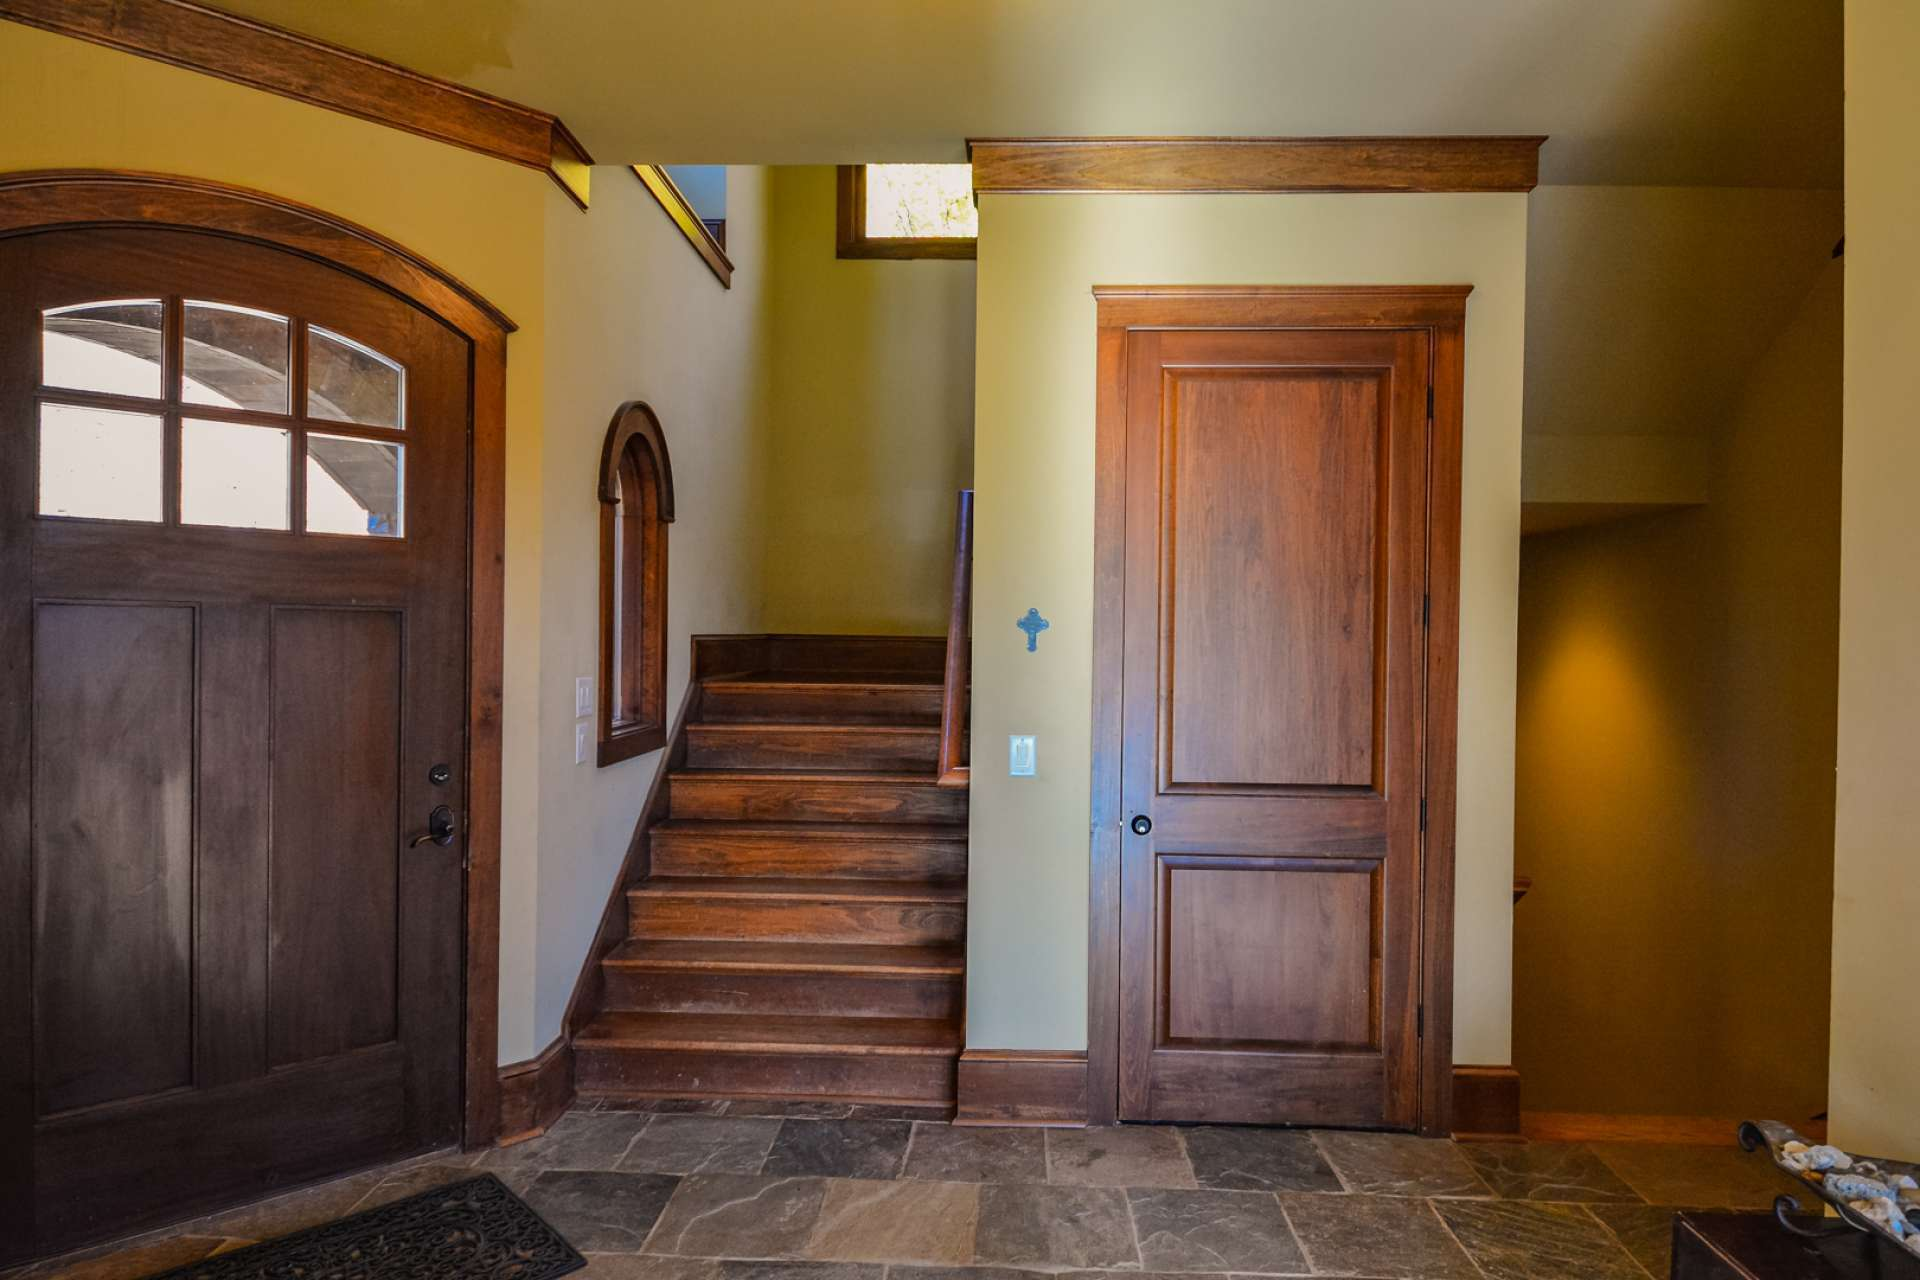 An inviting foyer welcomes you and guests with warm accents. There is even an option for an elevator.